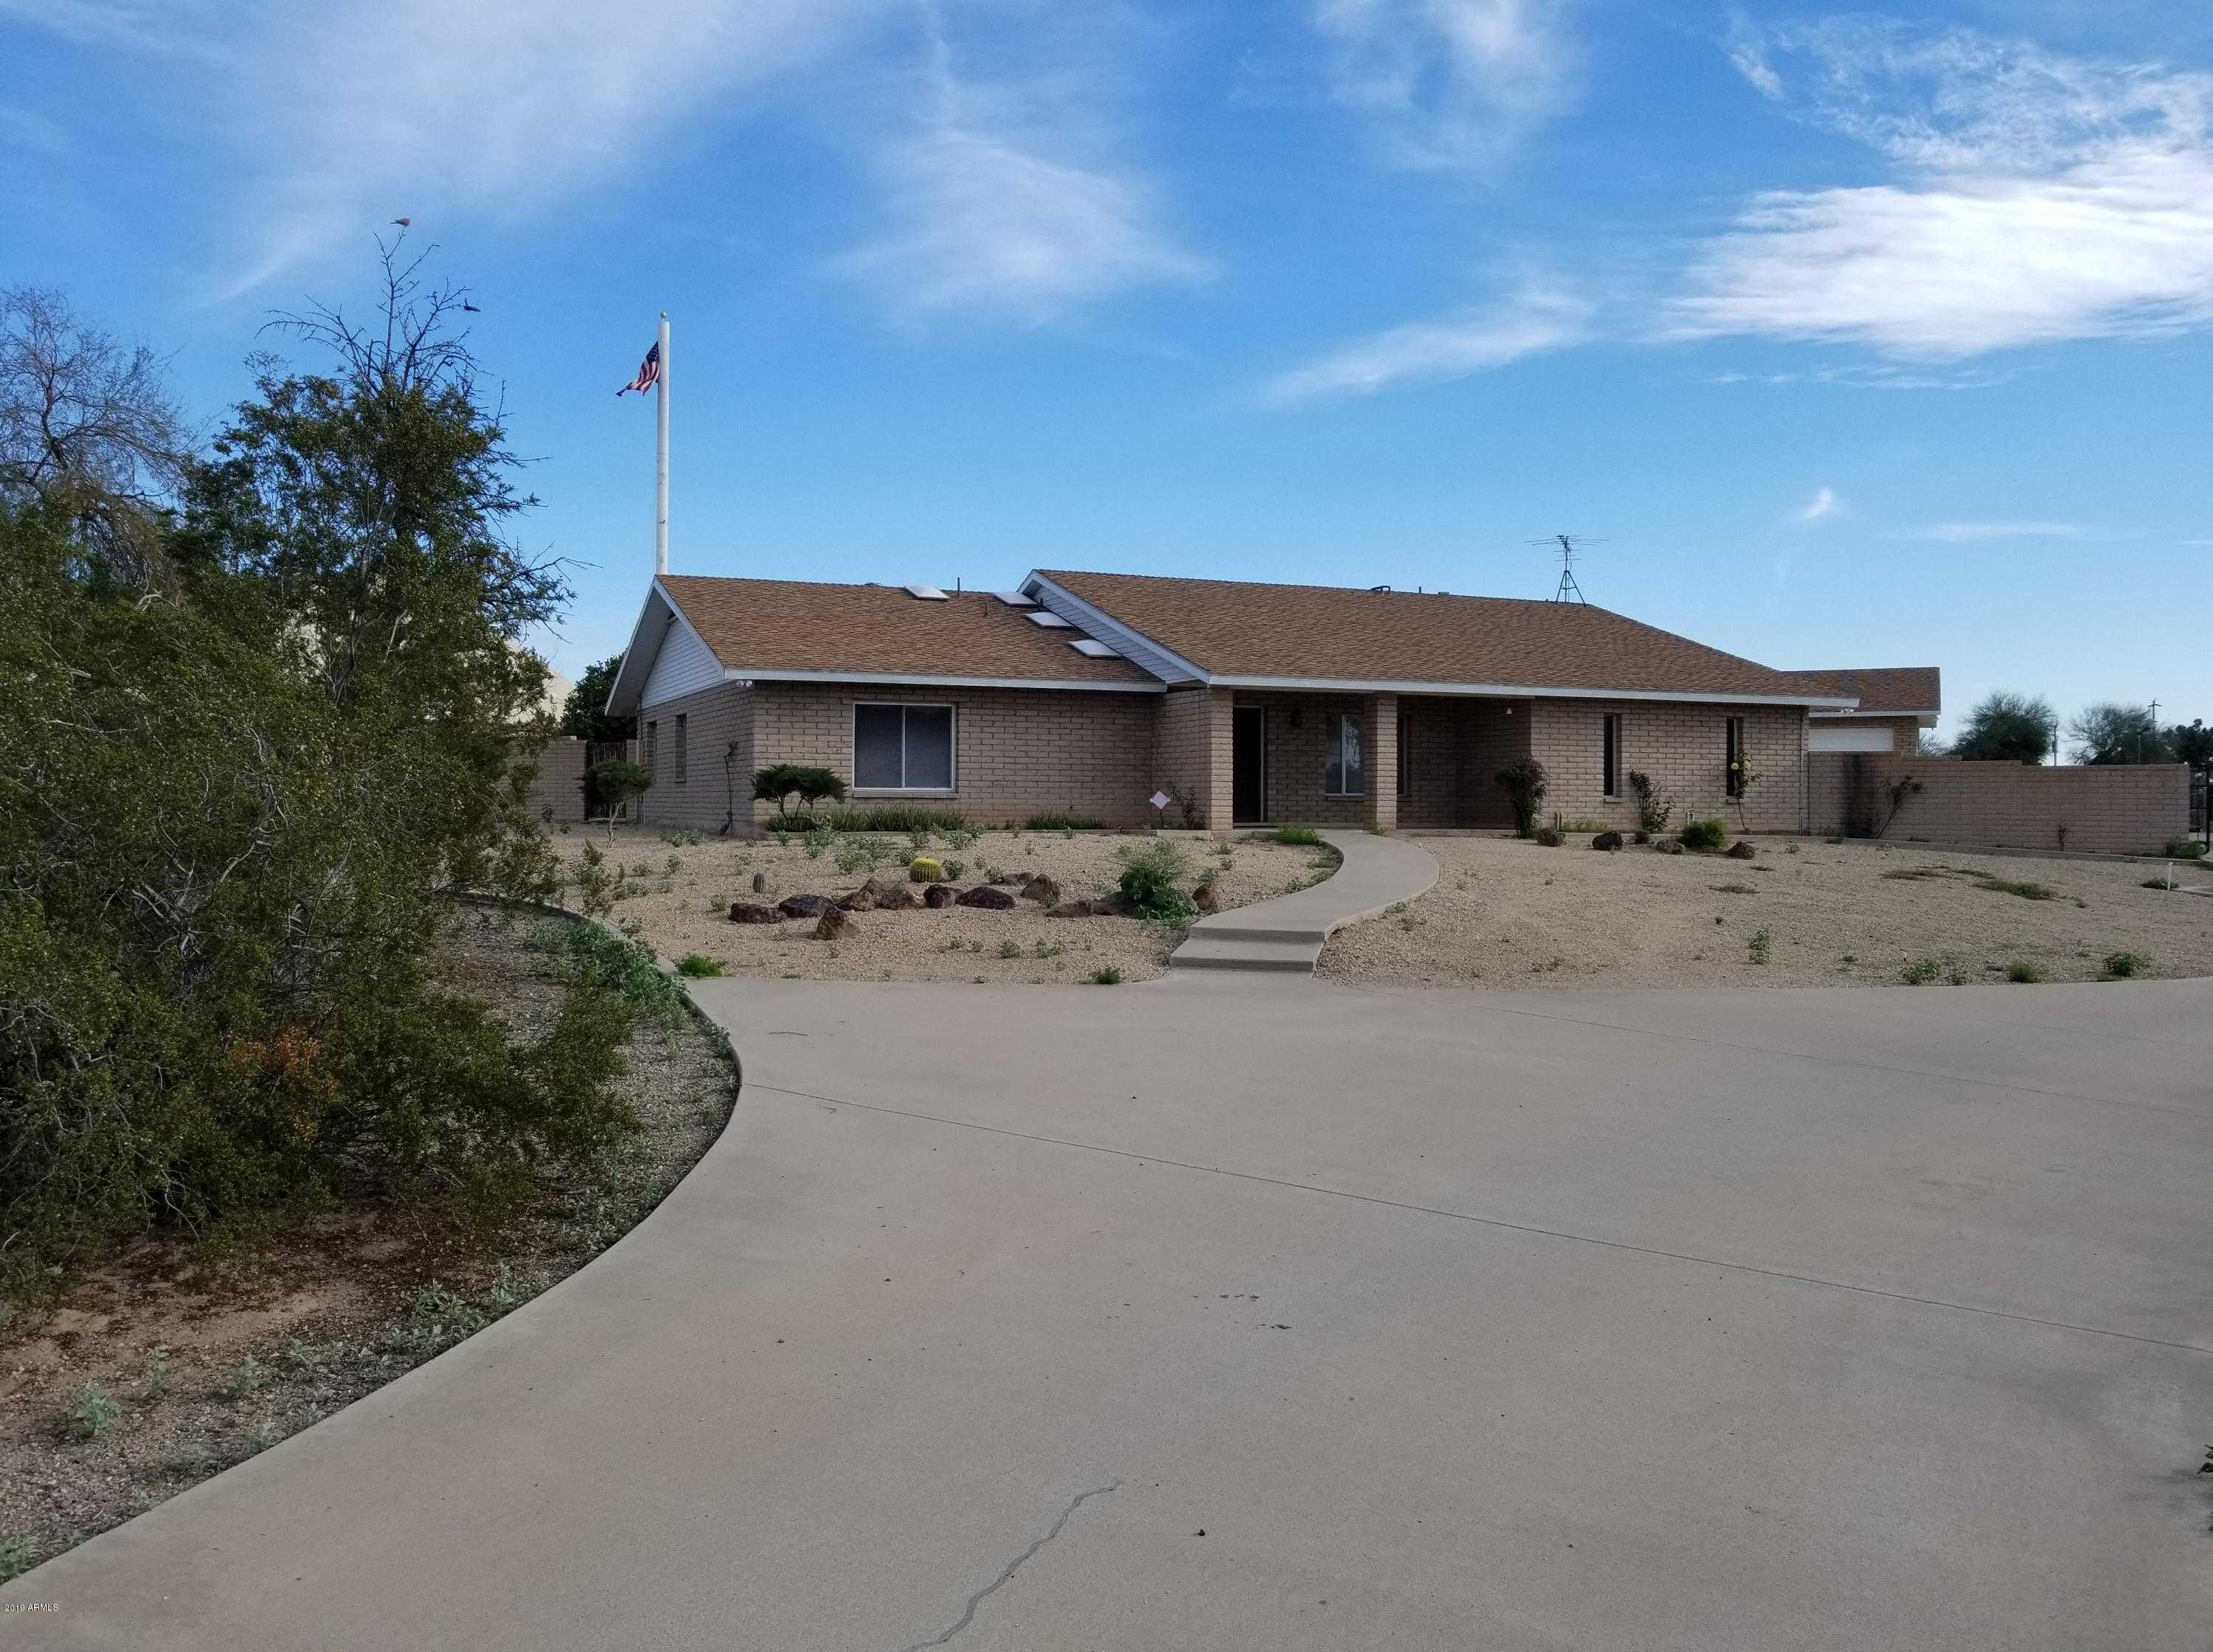 $799,000 - 4Br/3Ba - Home for Sale in Horse Property, Glendale